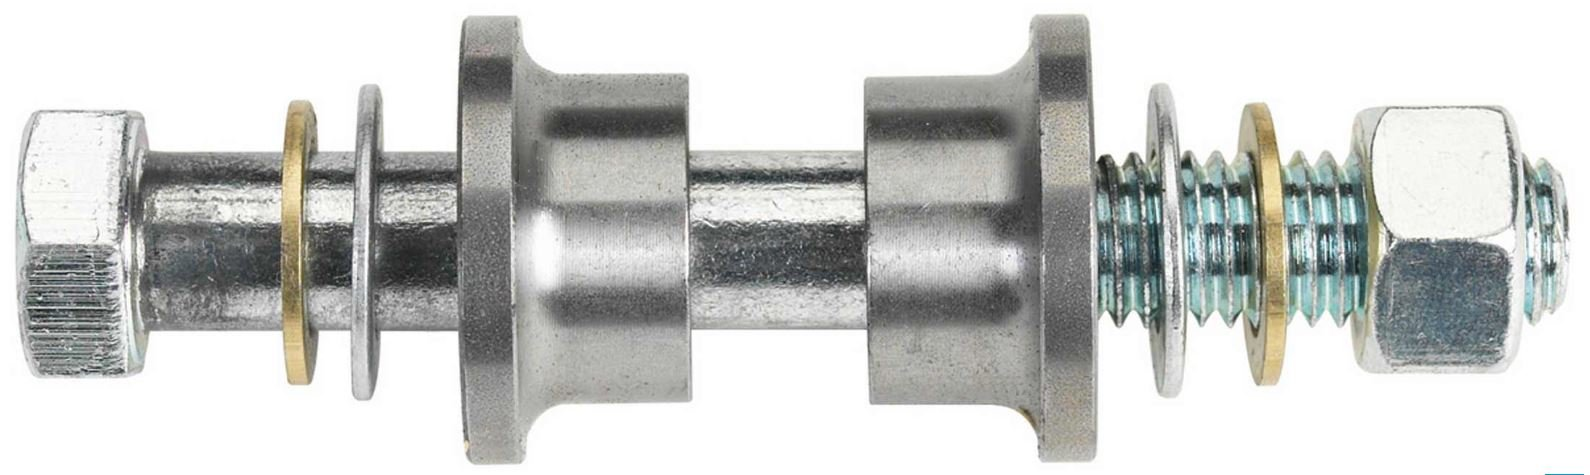 Flanging Tool, 1 inch Drain Tube